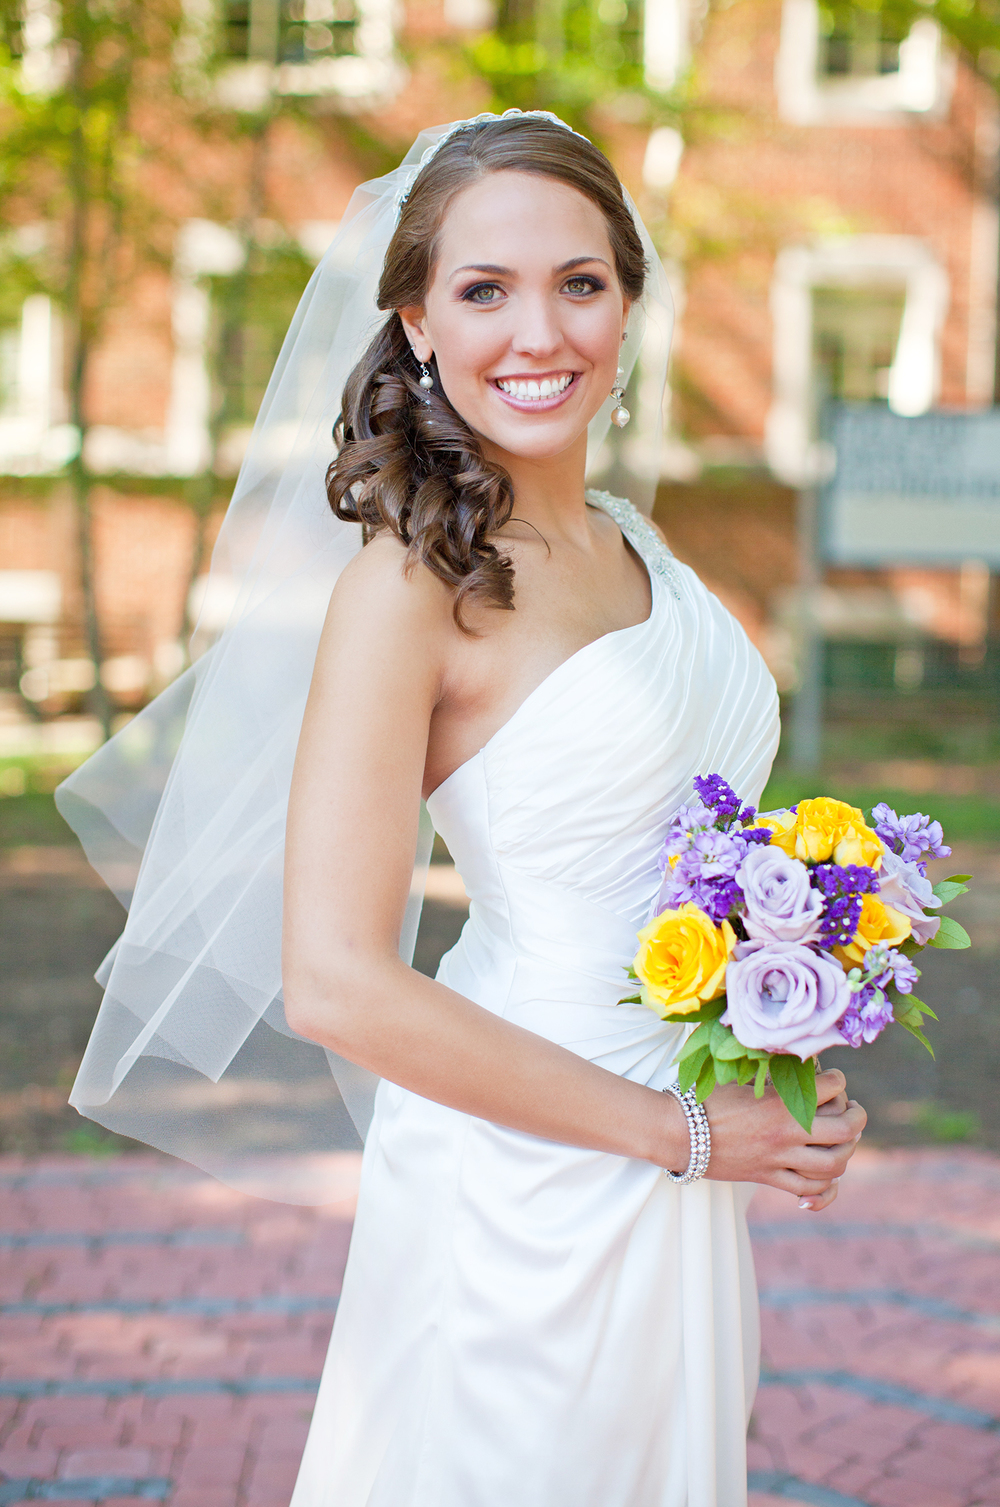 A Bridal Portrait in Raleigh, NC